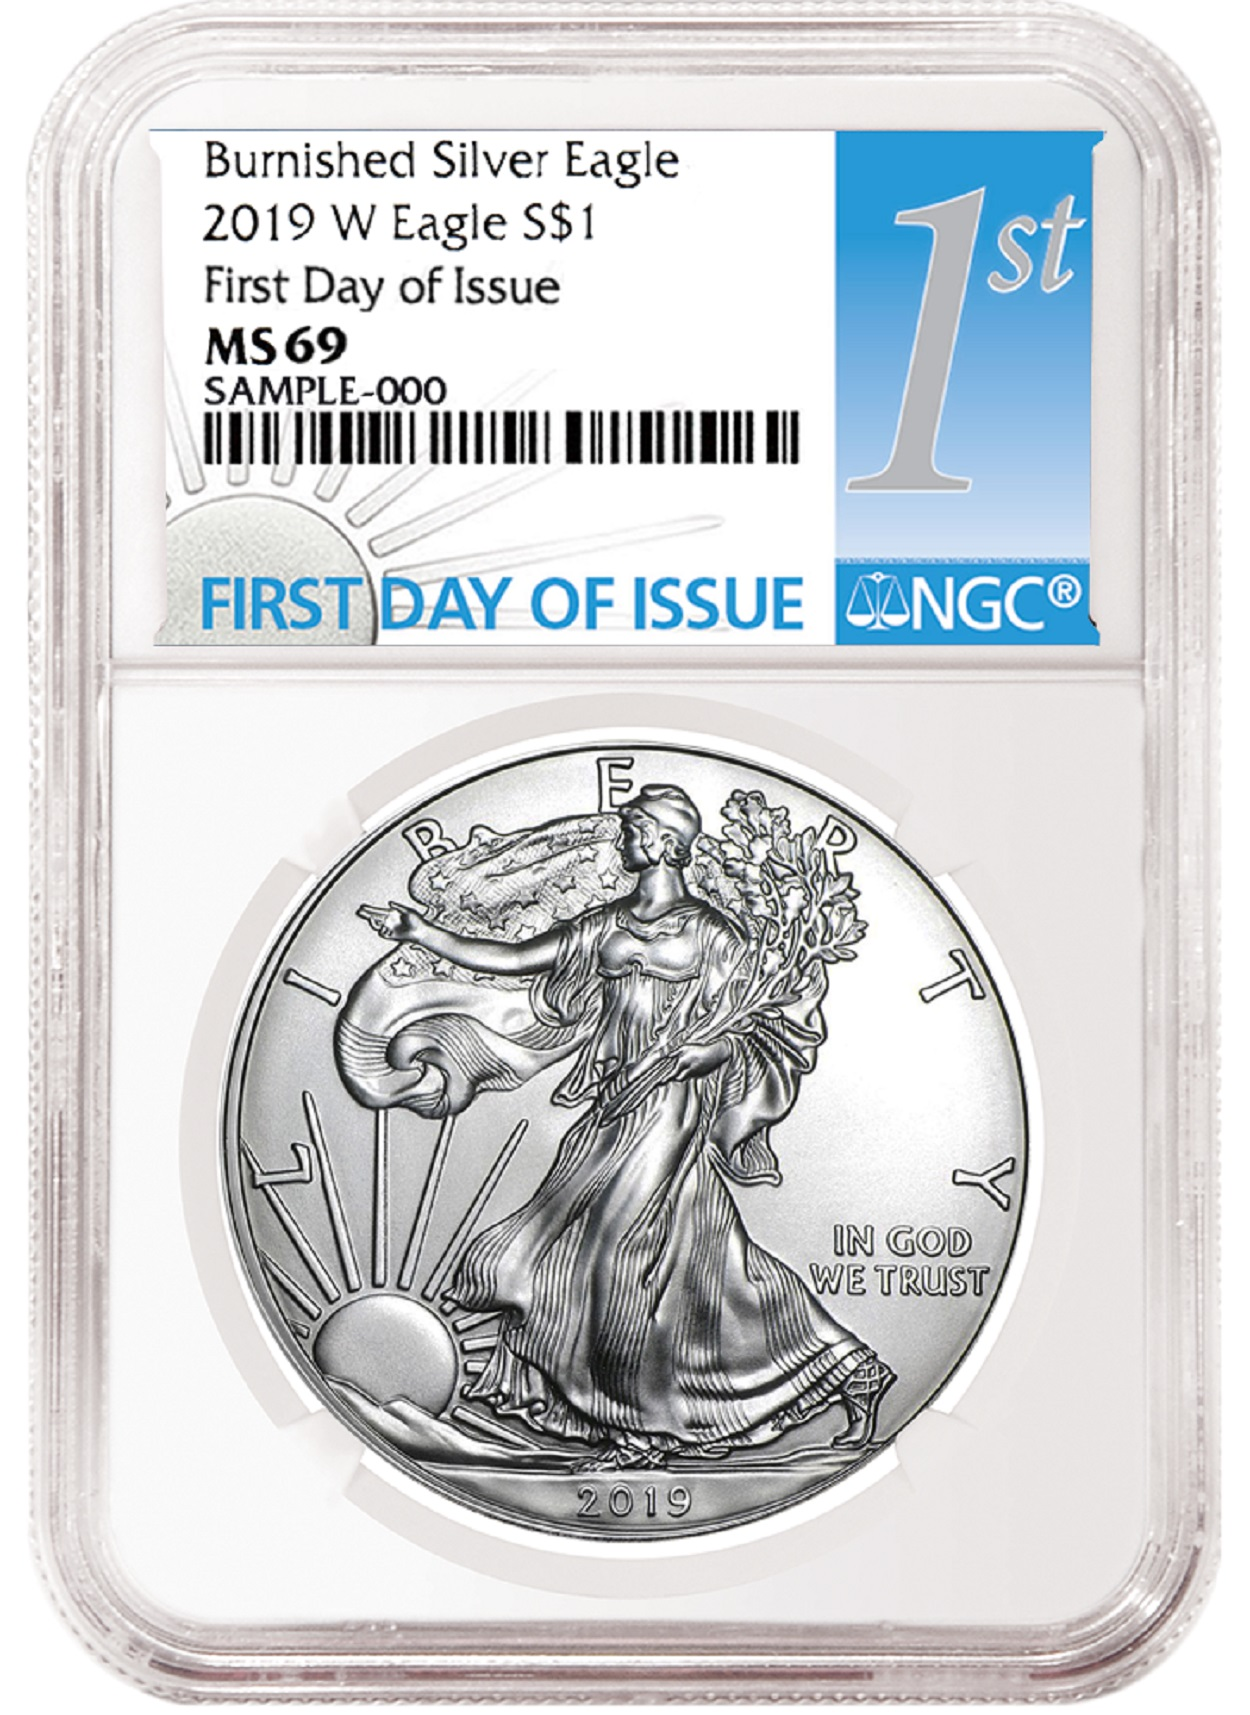 2019-W American Silver Eagle Burnished NGC MS70